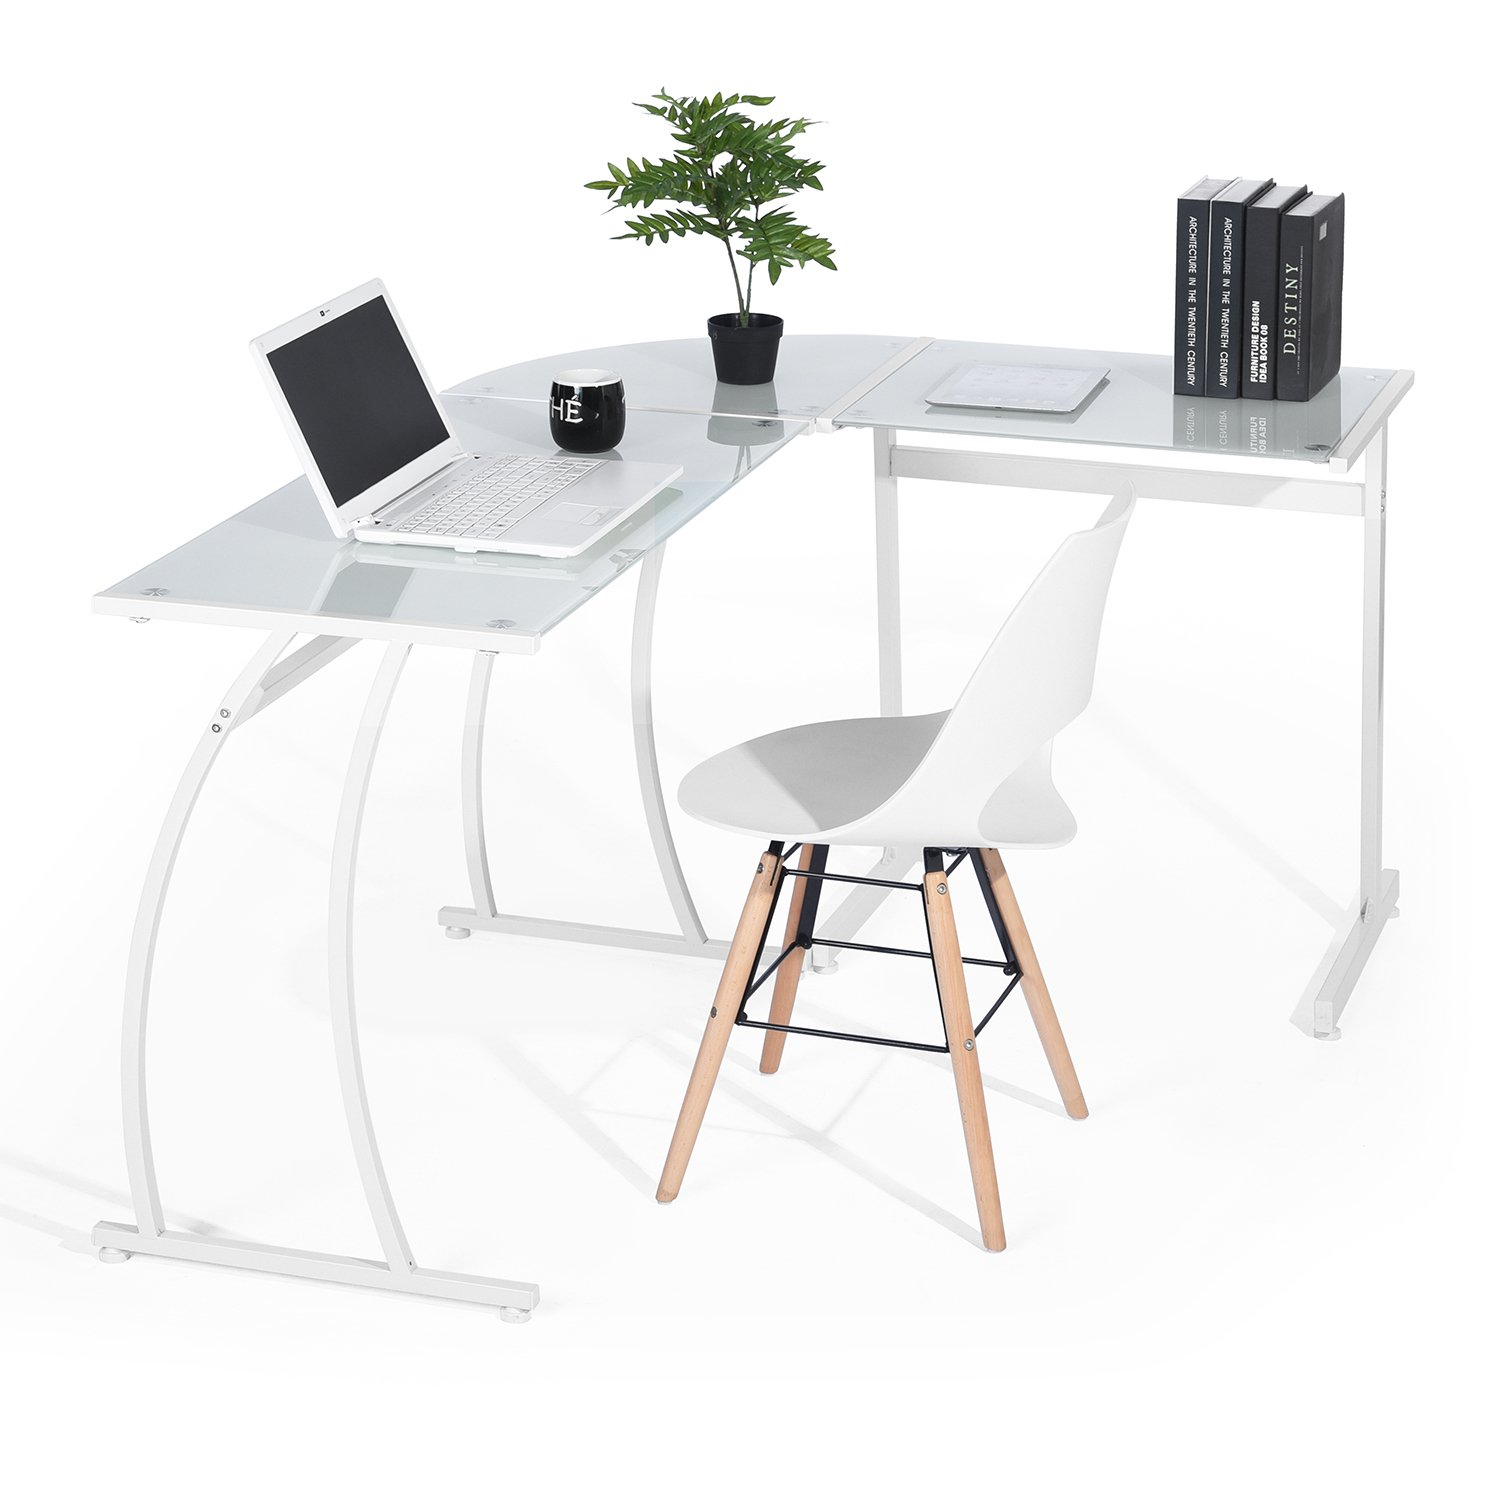 GreenForest Office Desk L Shape Corner Computer PC Table Workstation 3-Piece for Home,White with White Glass by GreenForest